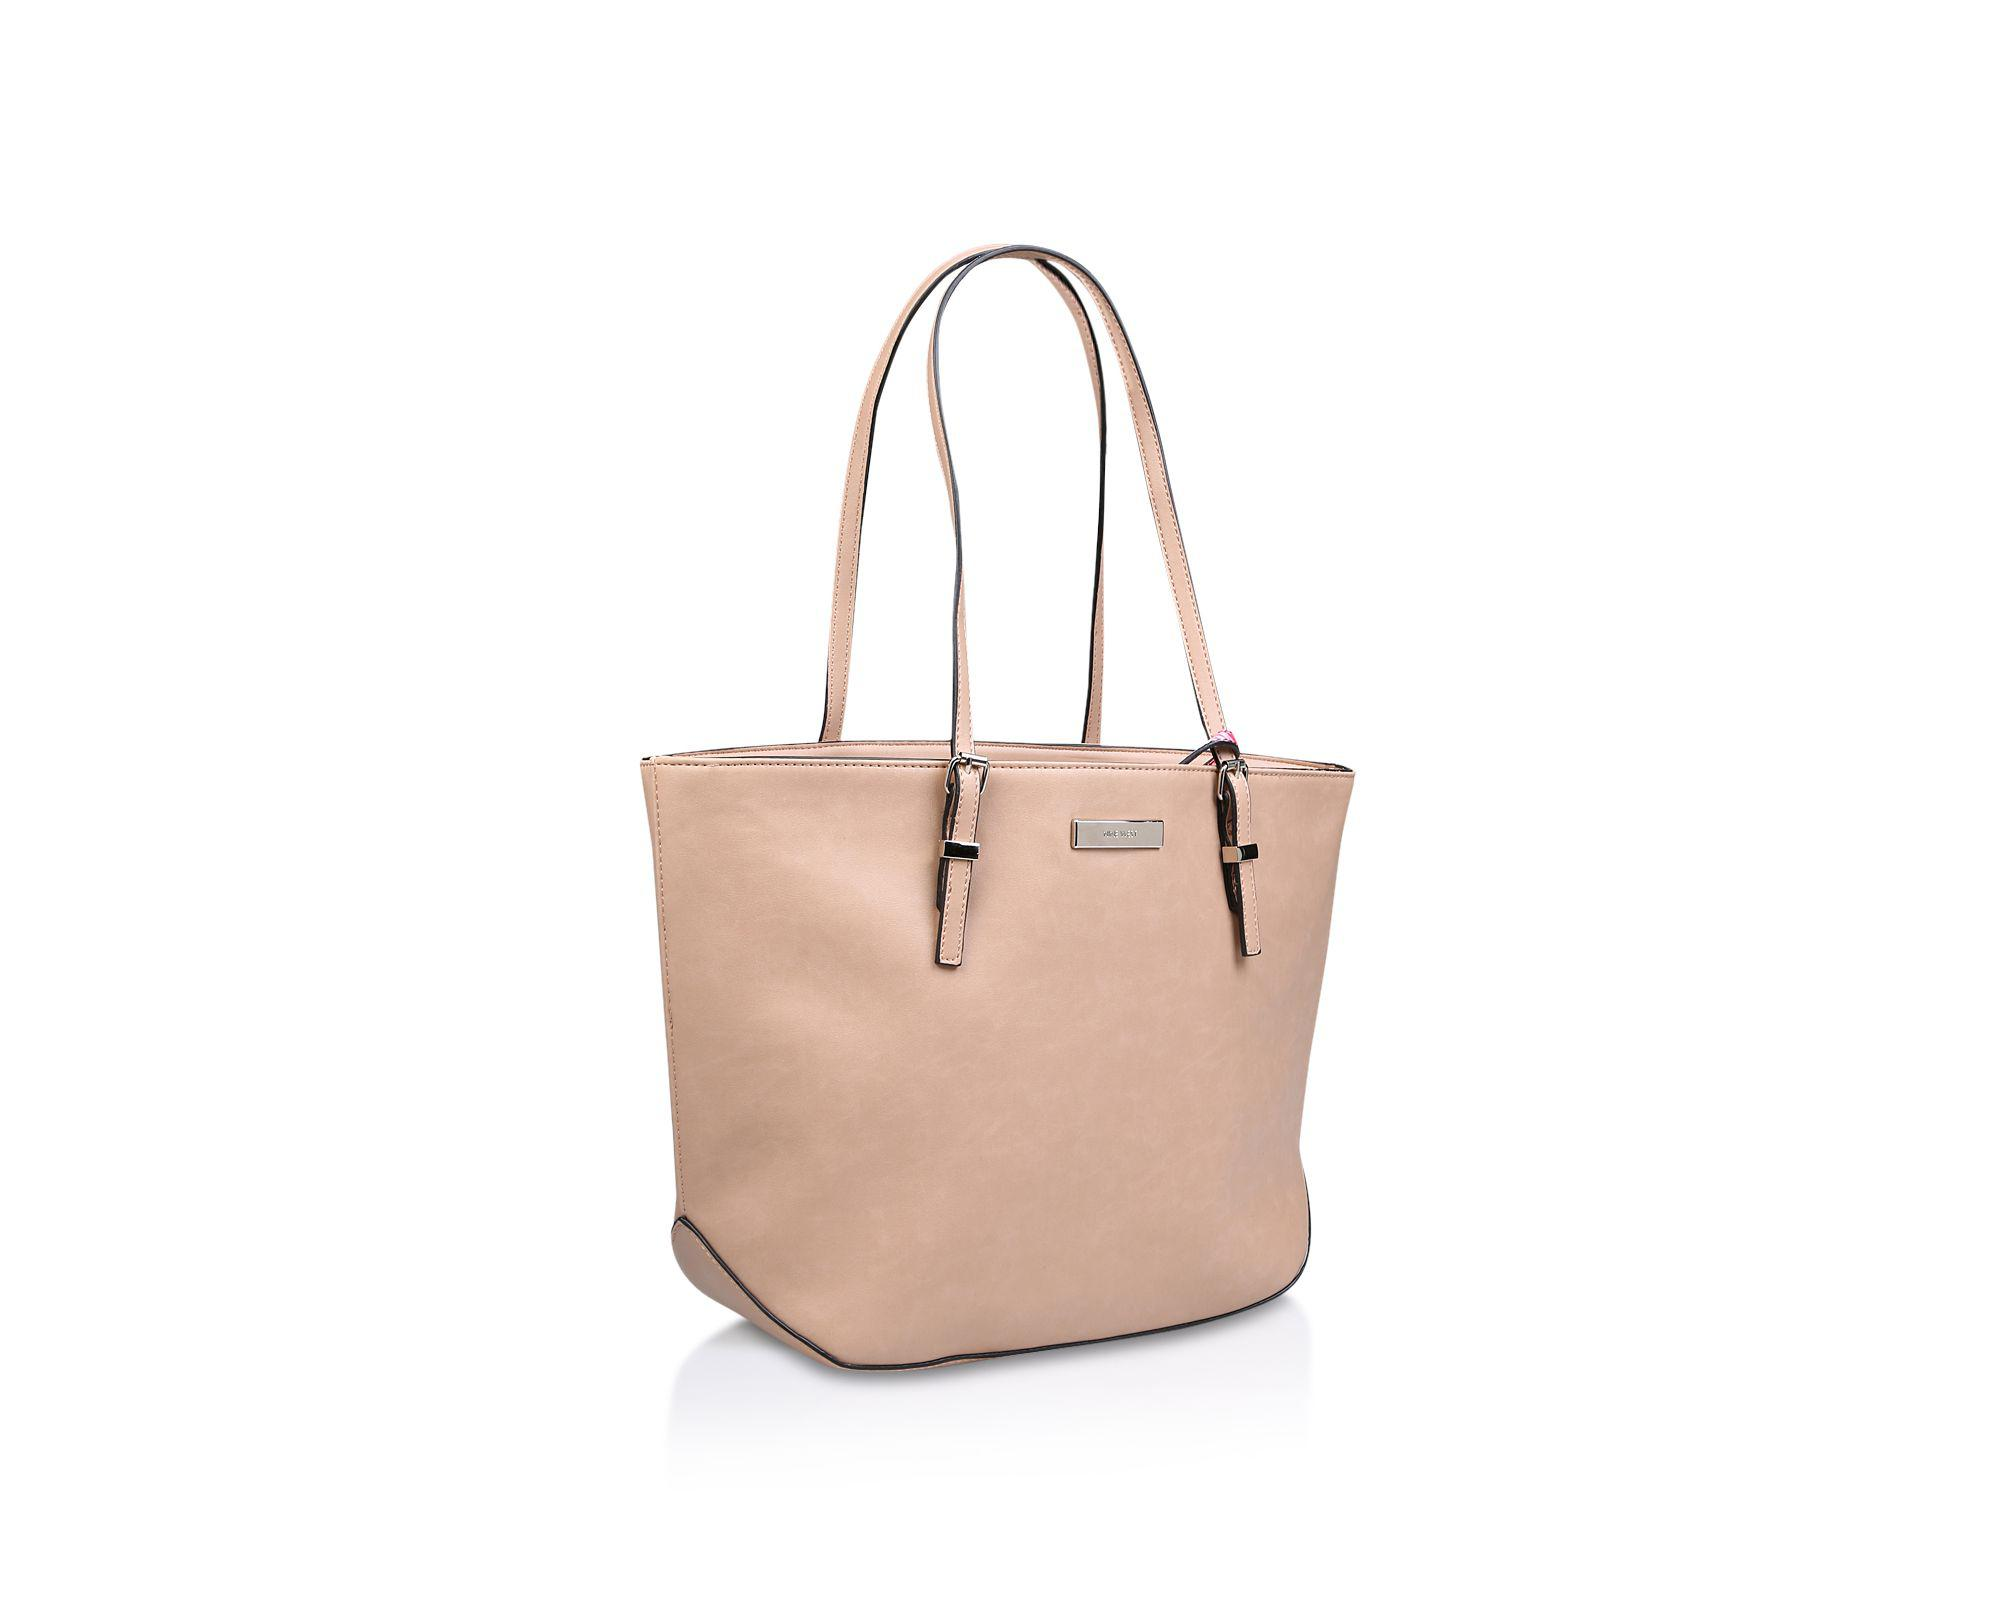 Nine West Nude  society Girl  Tote Bag in Natural - Lyst a921911b7e